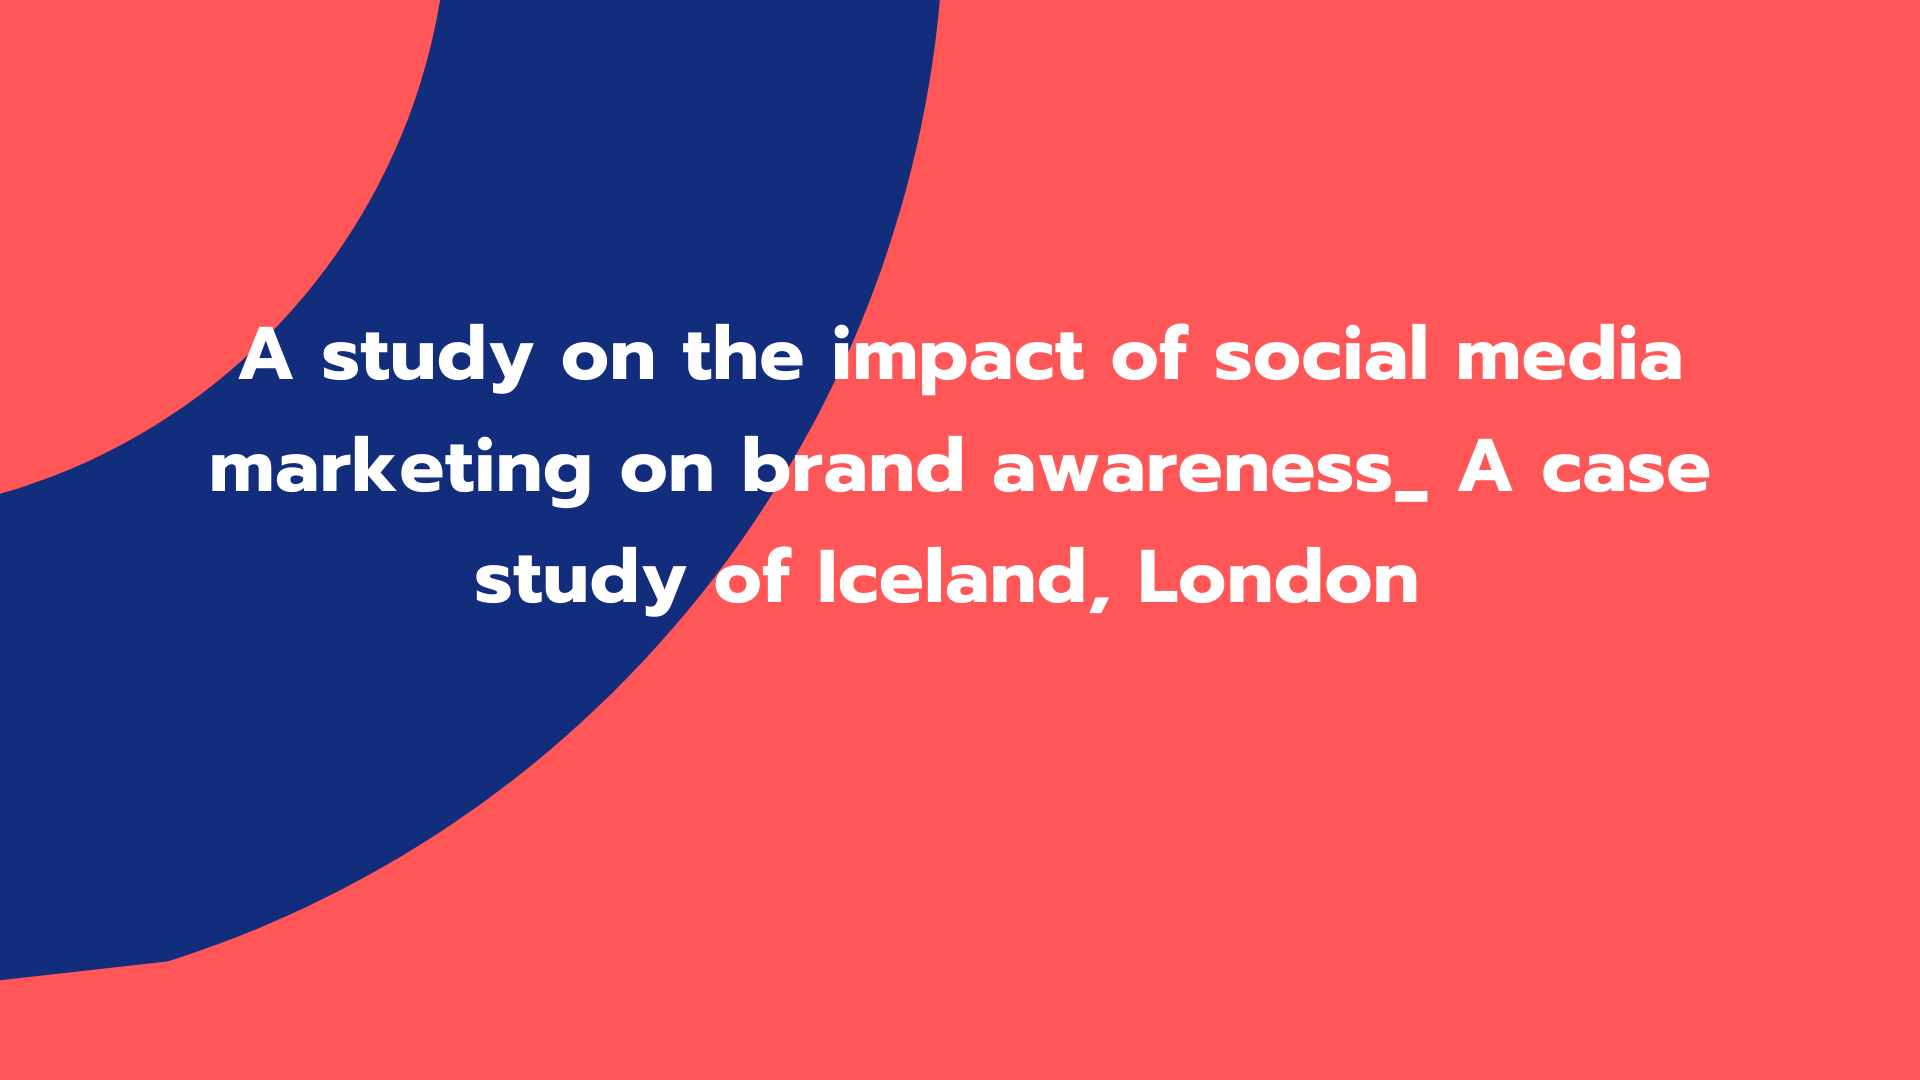 A study on the impact of social media marketing on brand awareness_ A case study of Iceland, London